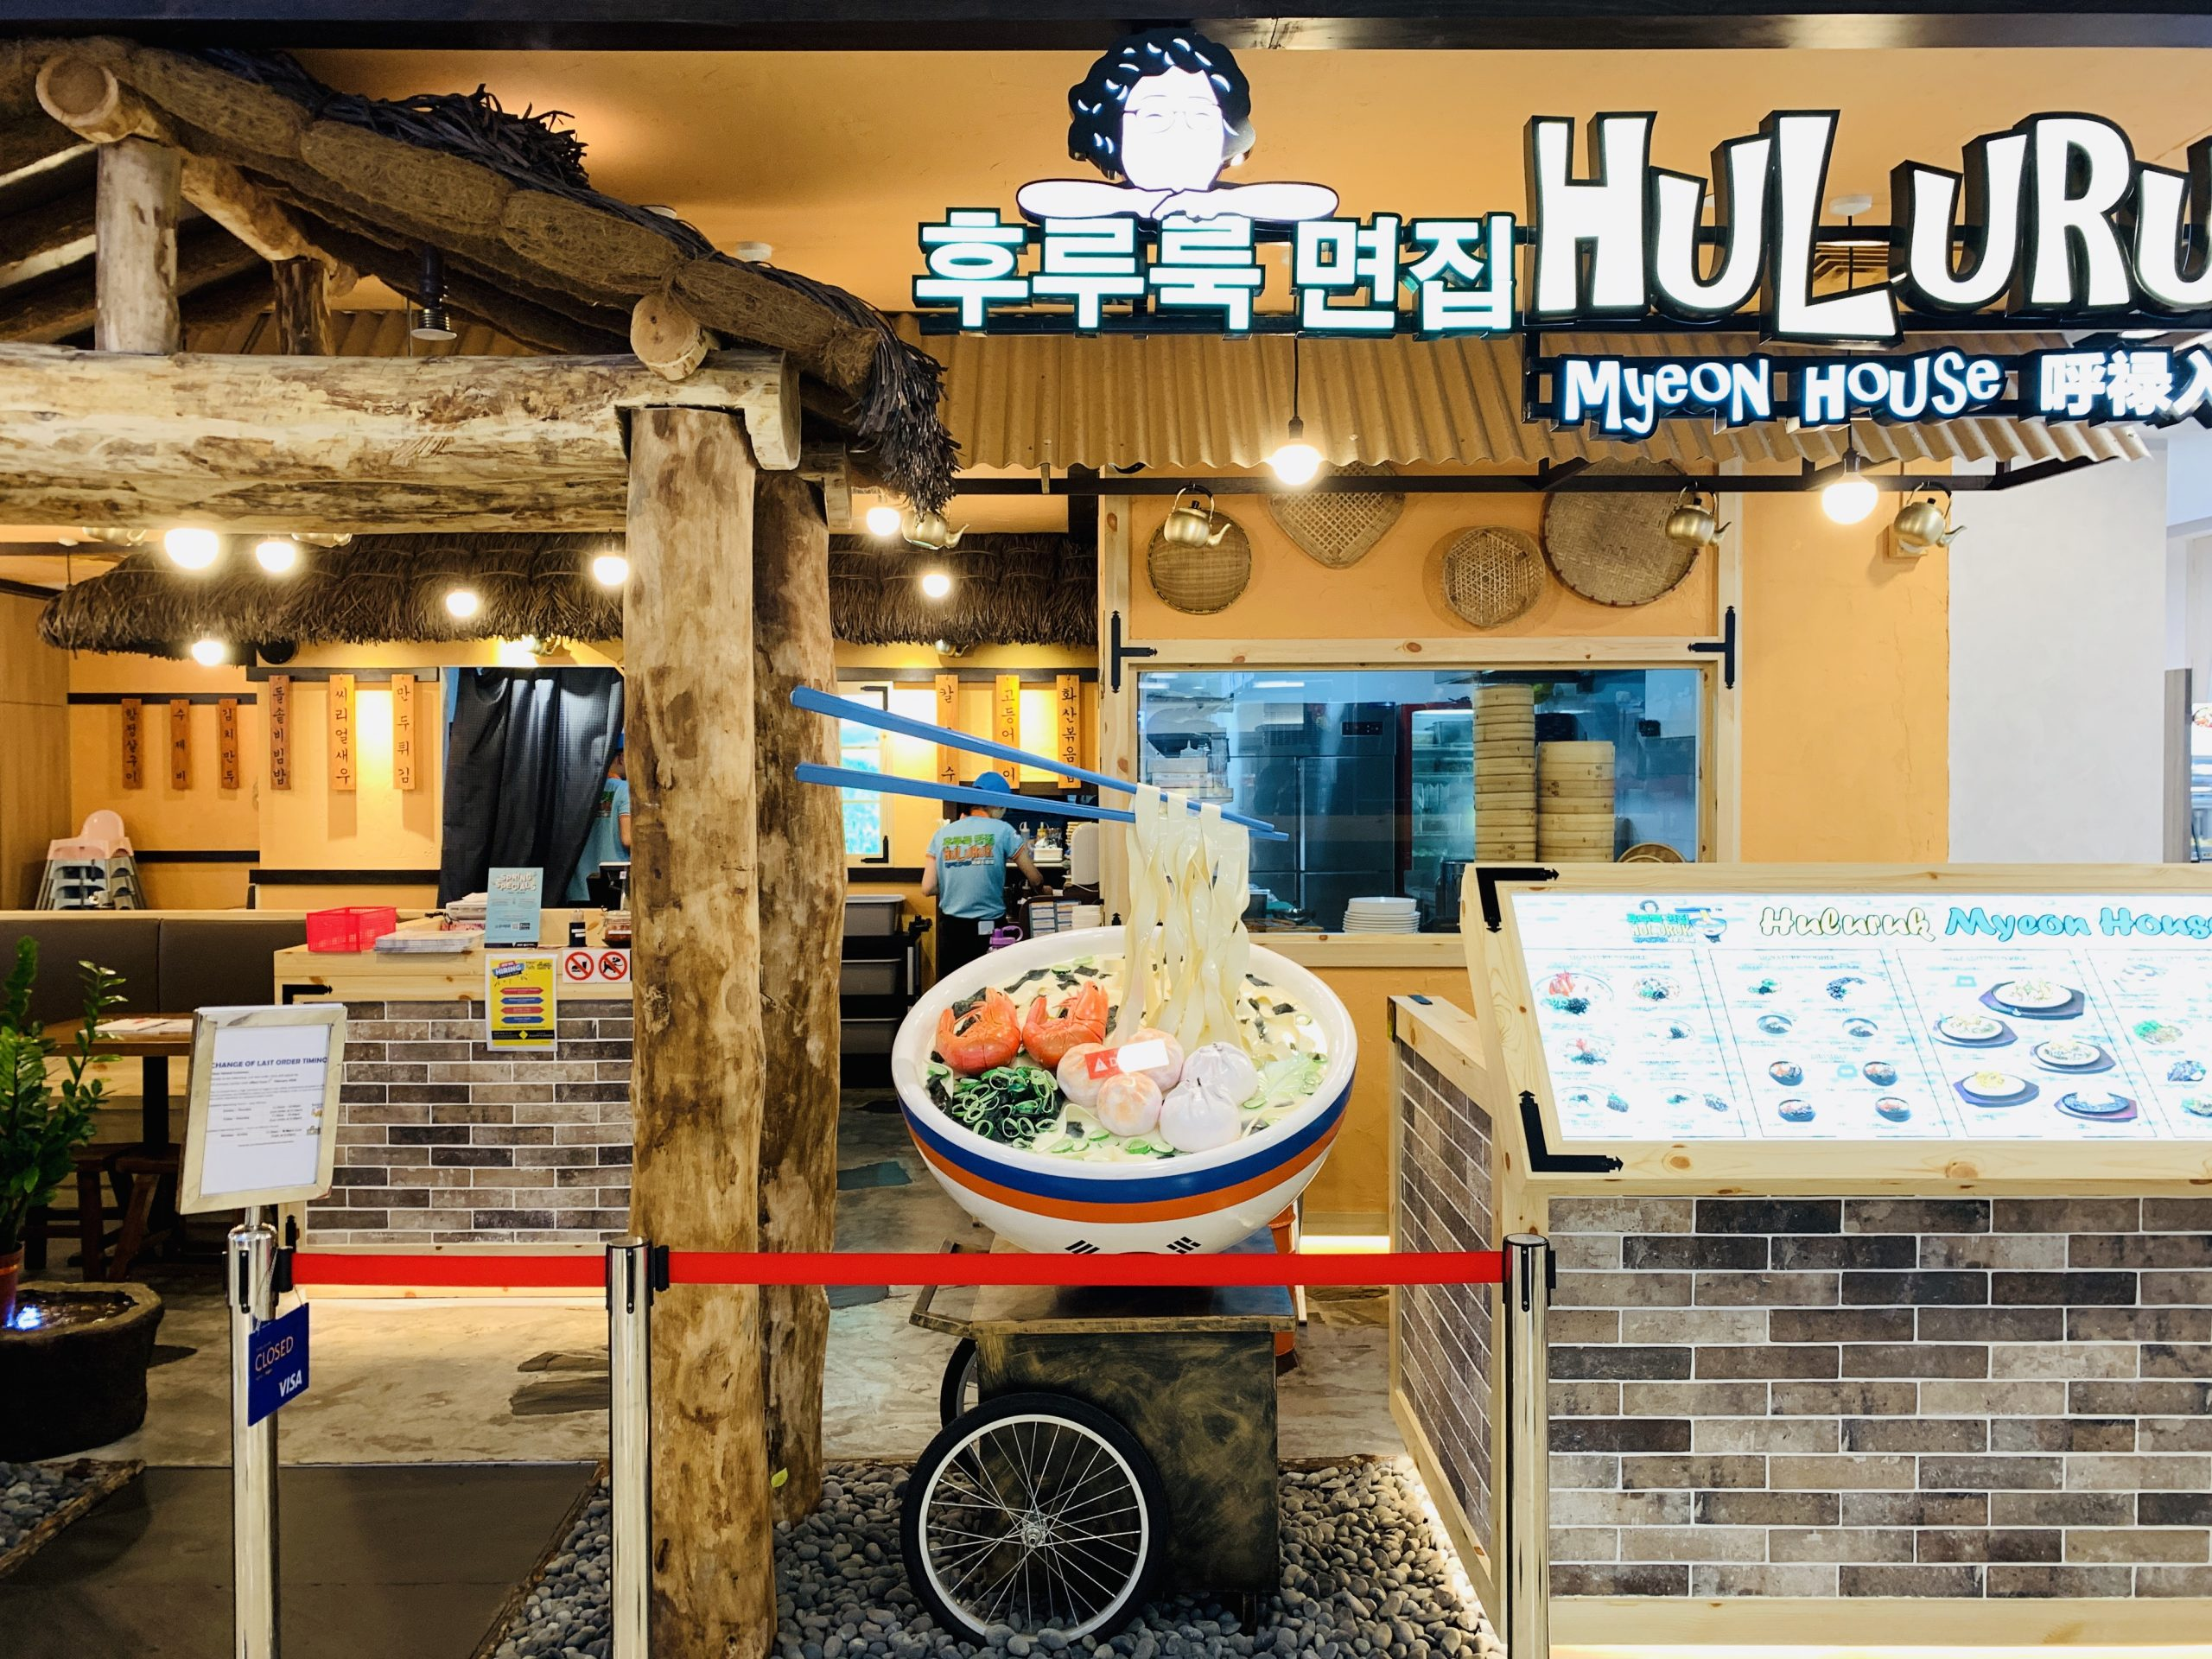 Huluruk Myeon House - Restaurant Front